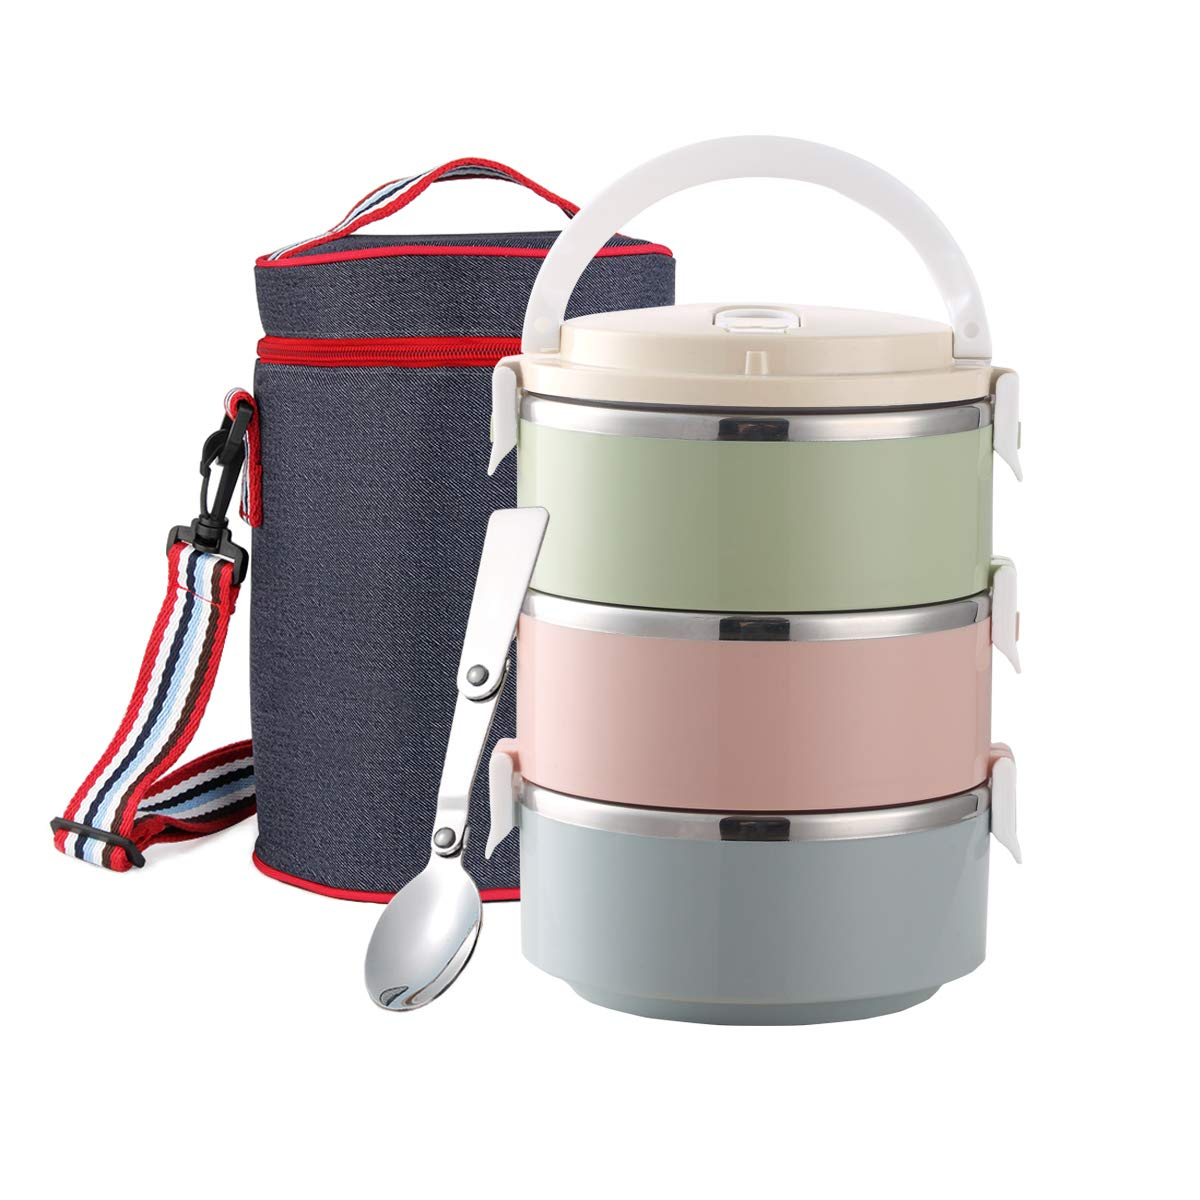 Lunch Box Stainless Steel 100% Leakproof Lunch Container with Insulated Lunch Bag Food Storage Container For Kids & Adults (3-Tier) by Maiyuansu